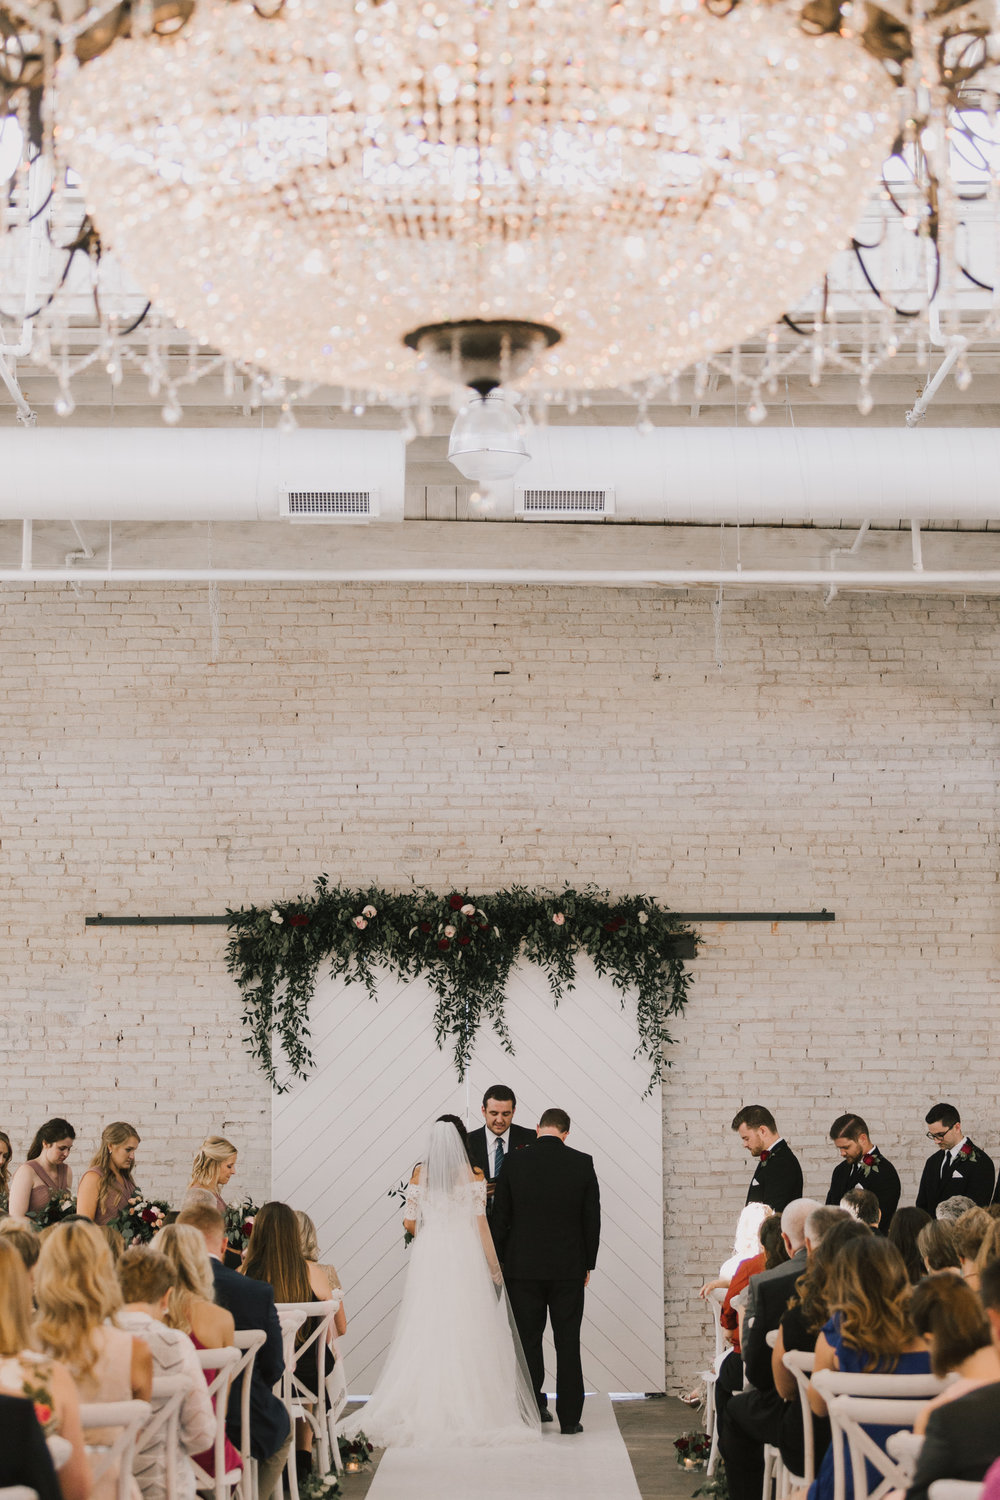 alyssa barletter photography kansas city summer glam boho wedding photographer the abbot crossroads kc-63.jpg